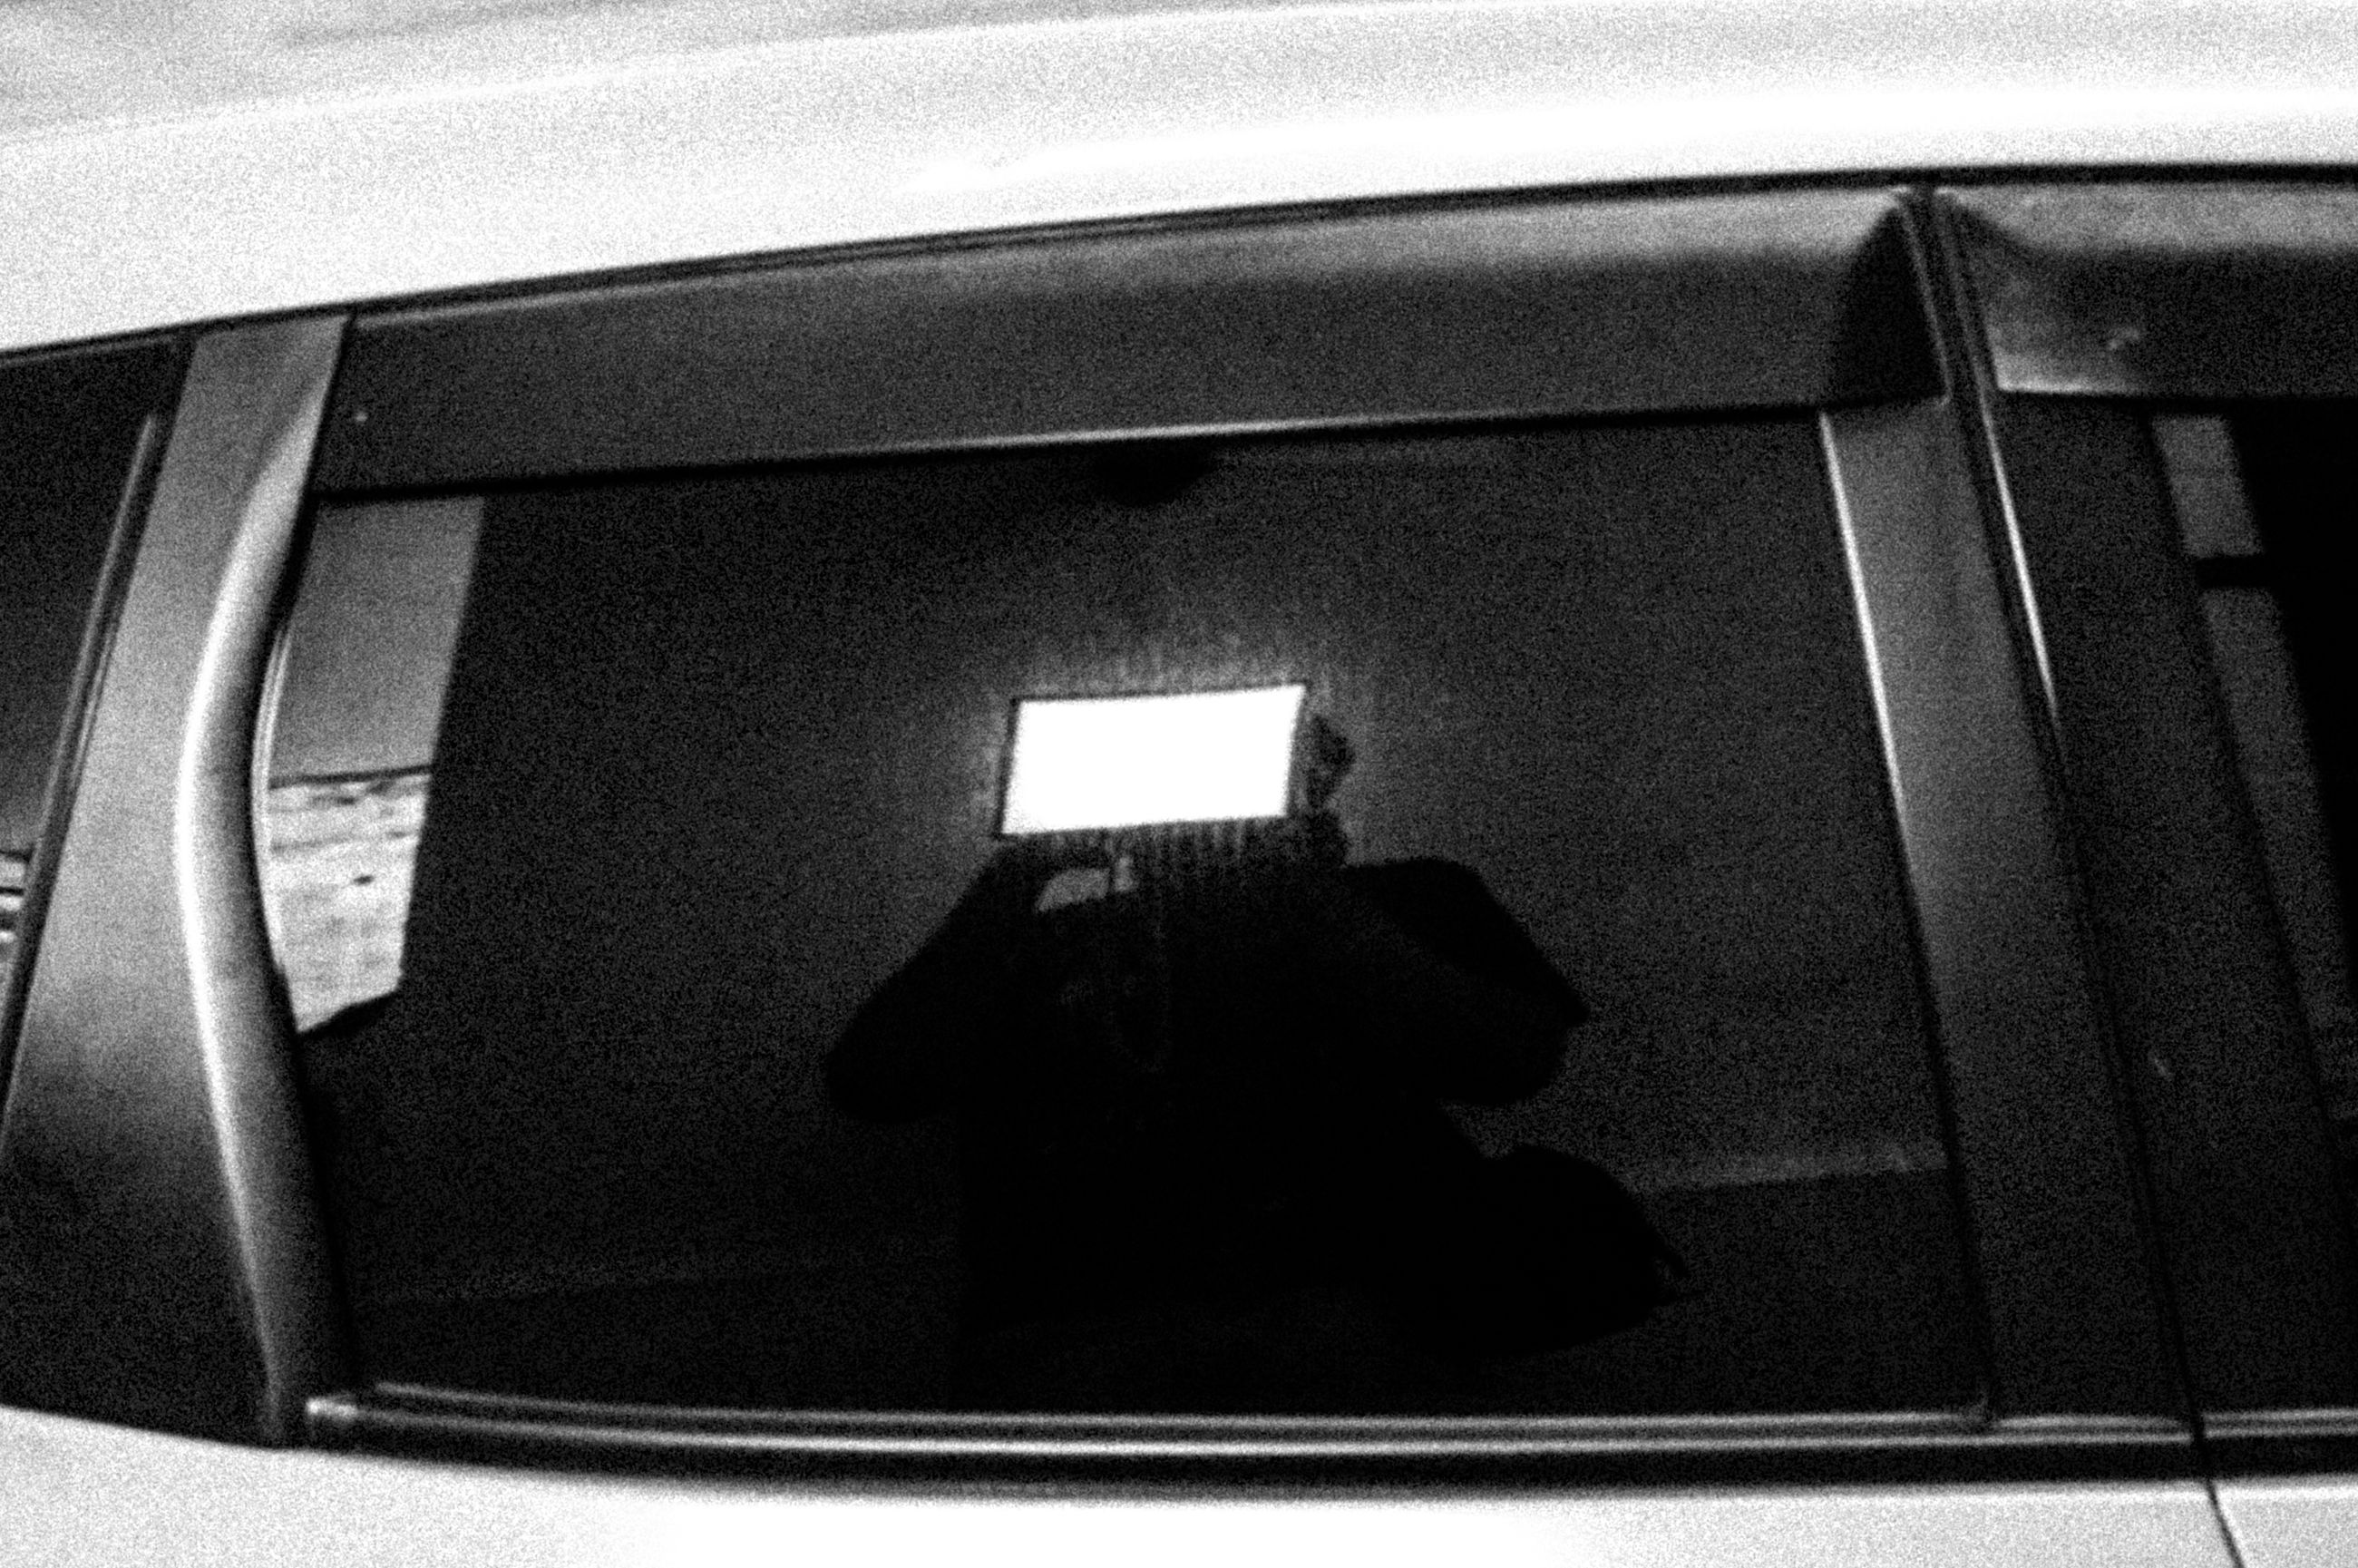 real people, rear view, photographing, technology, illuminated, one person, men, transportation, indoors, lifestyles, day, photography themes, wireless technology, people